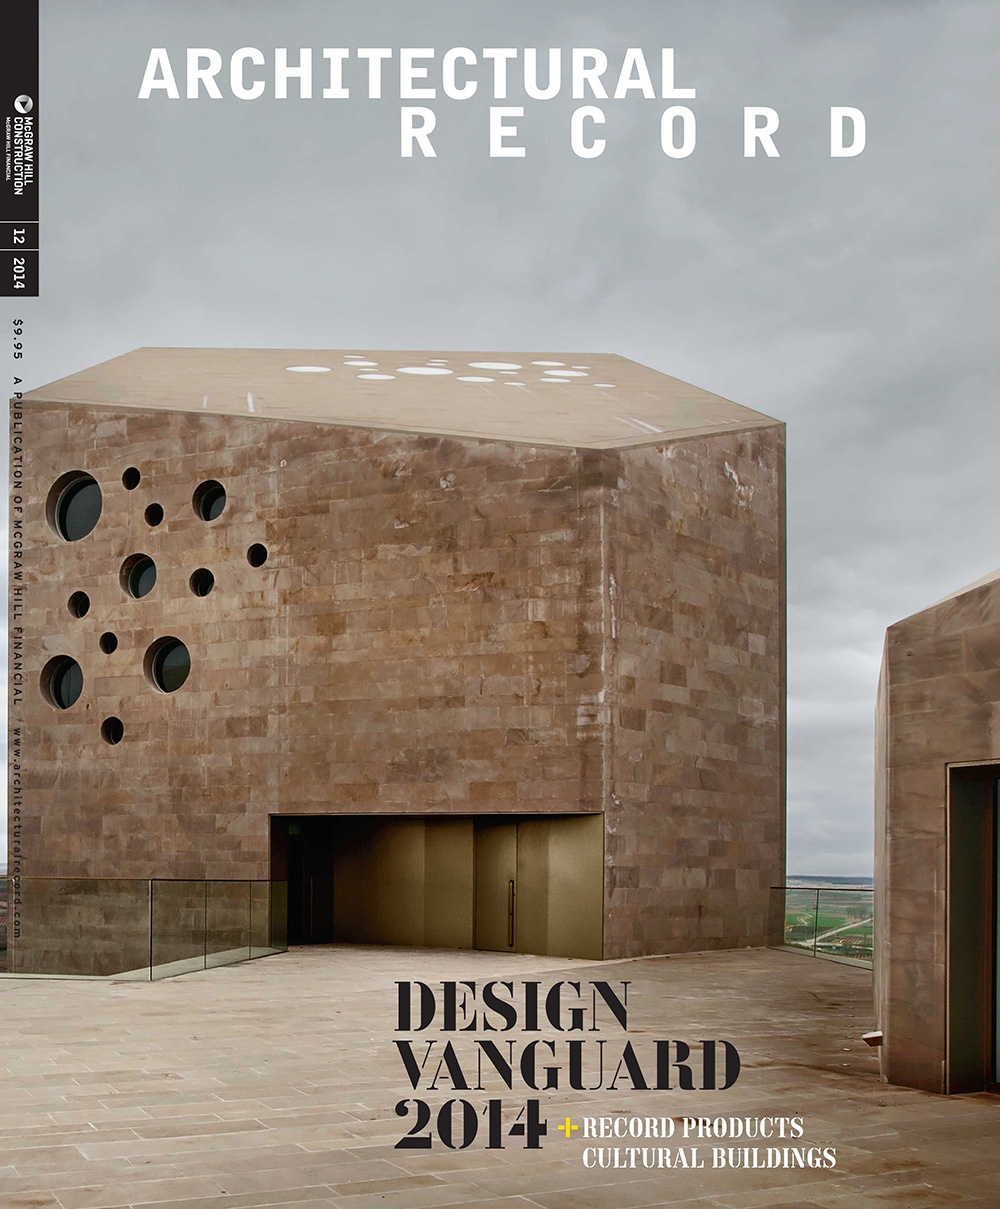 Architectural Record Design Vanguard